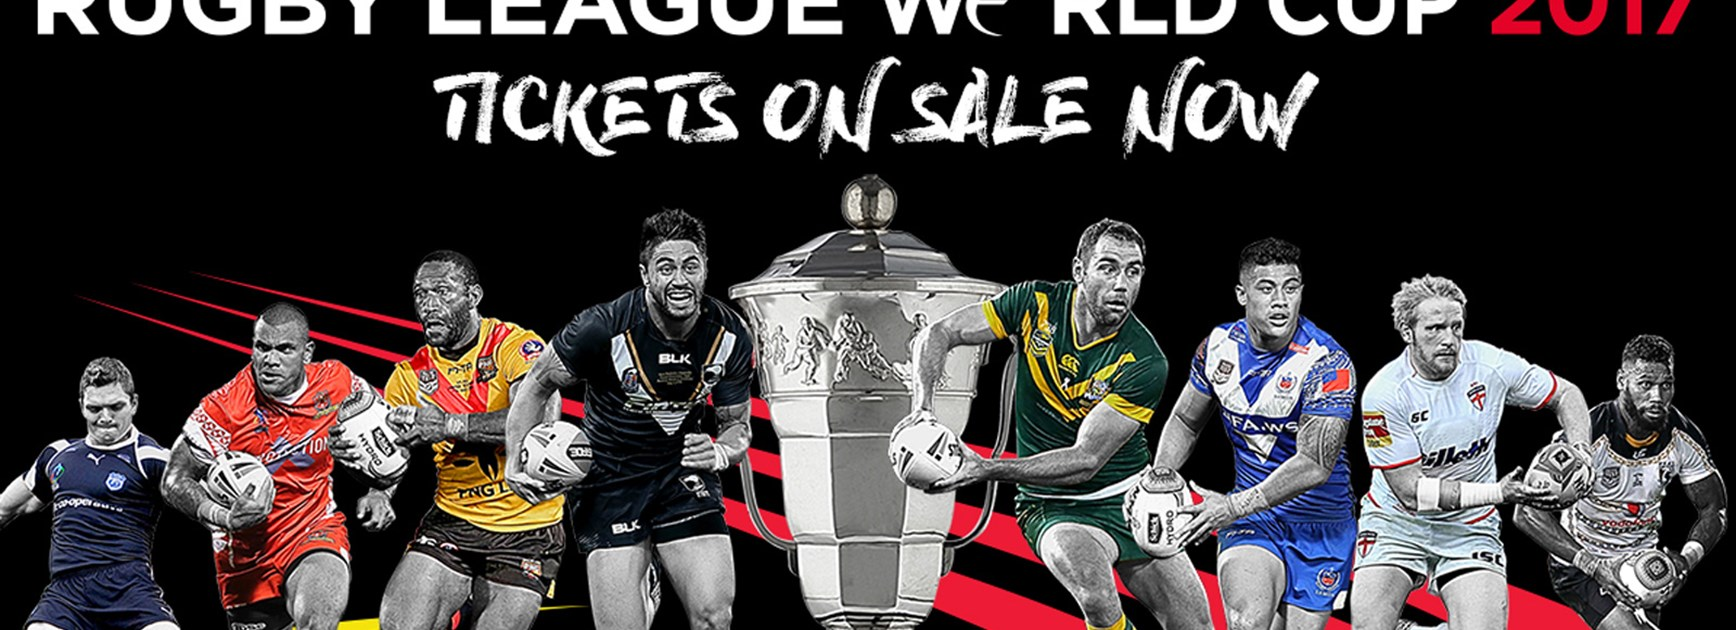 Tickets are on sale for the 2017 Rugby League World Cup.